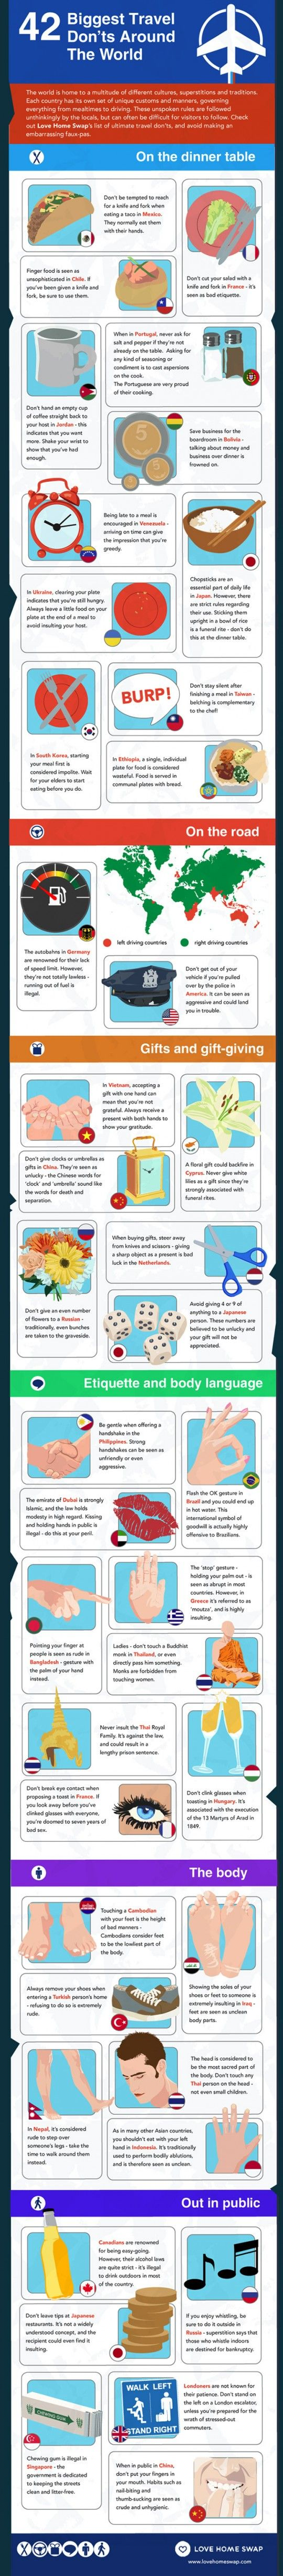 42 of the Biggest Travel Don'ts Around The World #traveltip #infographic